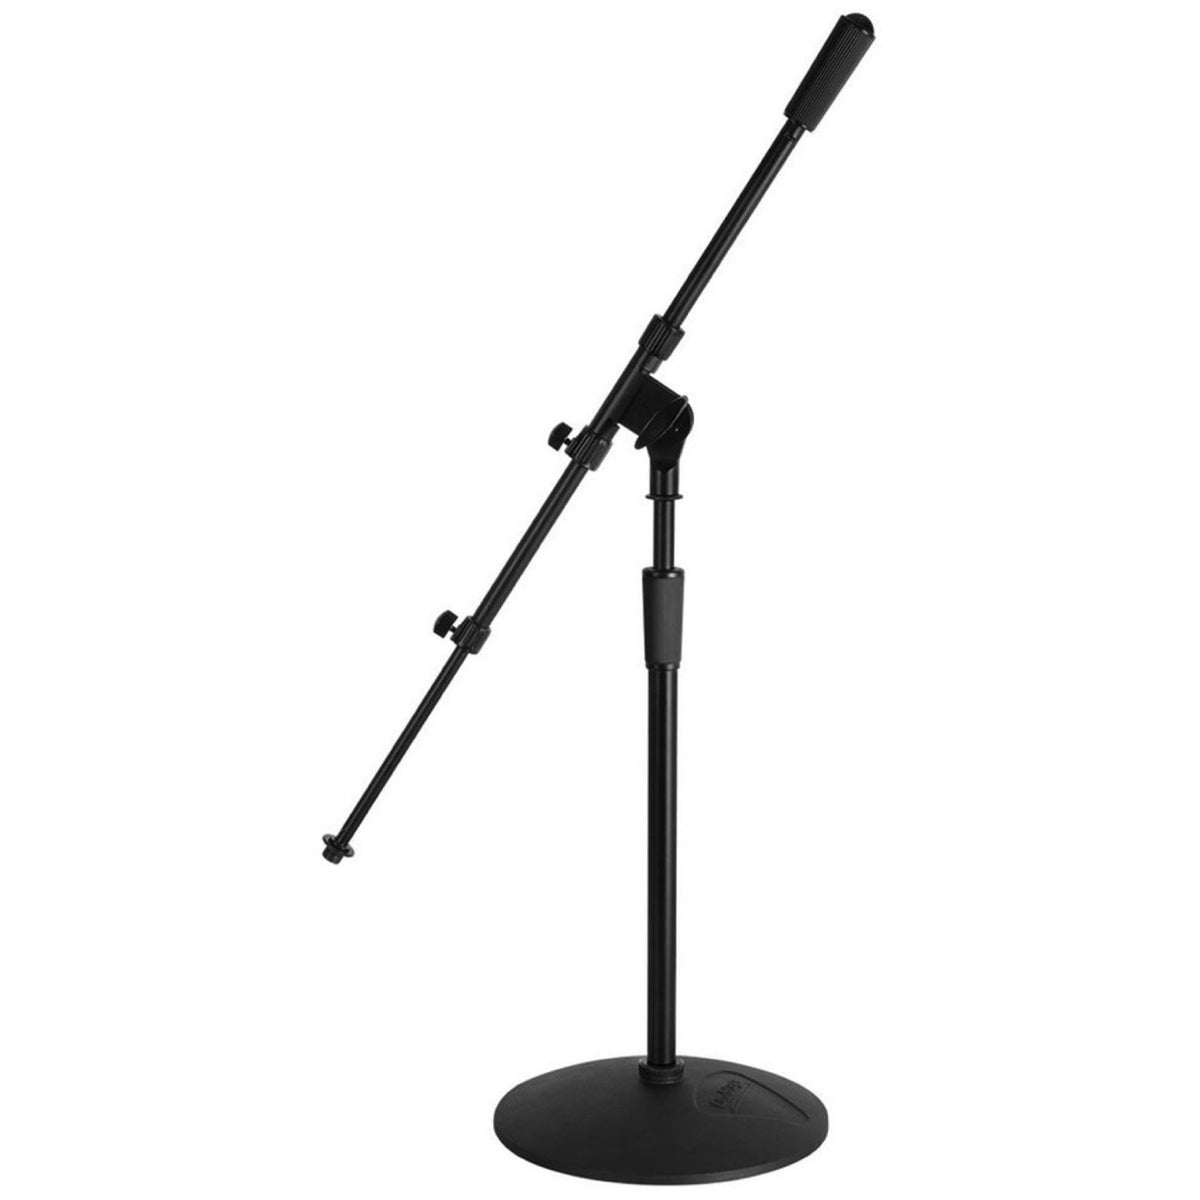 On-Stage Pro Kick Drum Mic Stand, MS9417, 17 Inch to 28.5 Inch